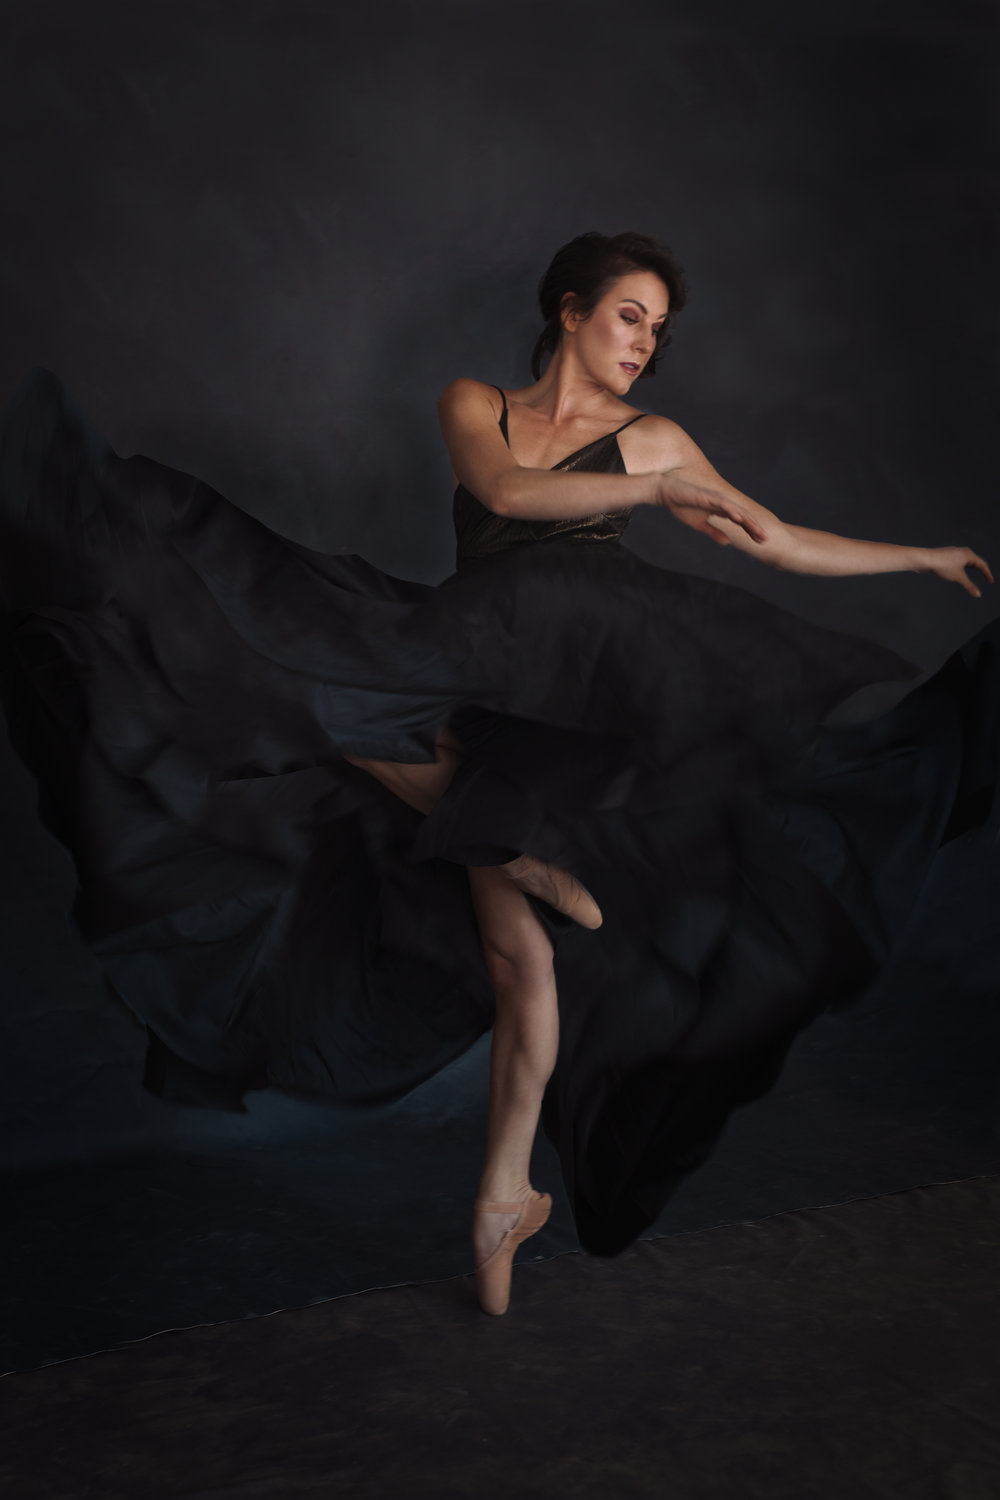 ballet photos - portrait of a dancer - Asheville dance photographer - photo studio